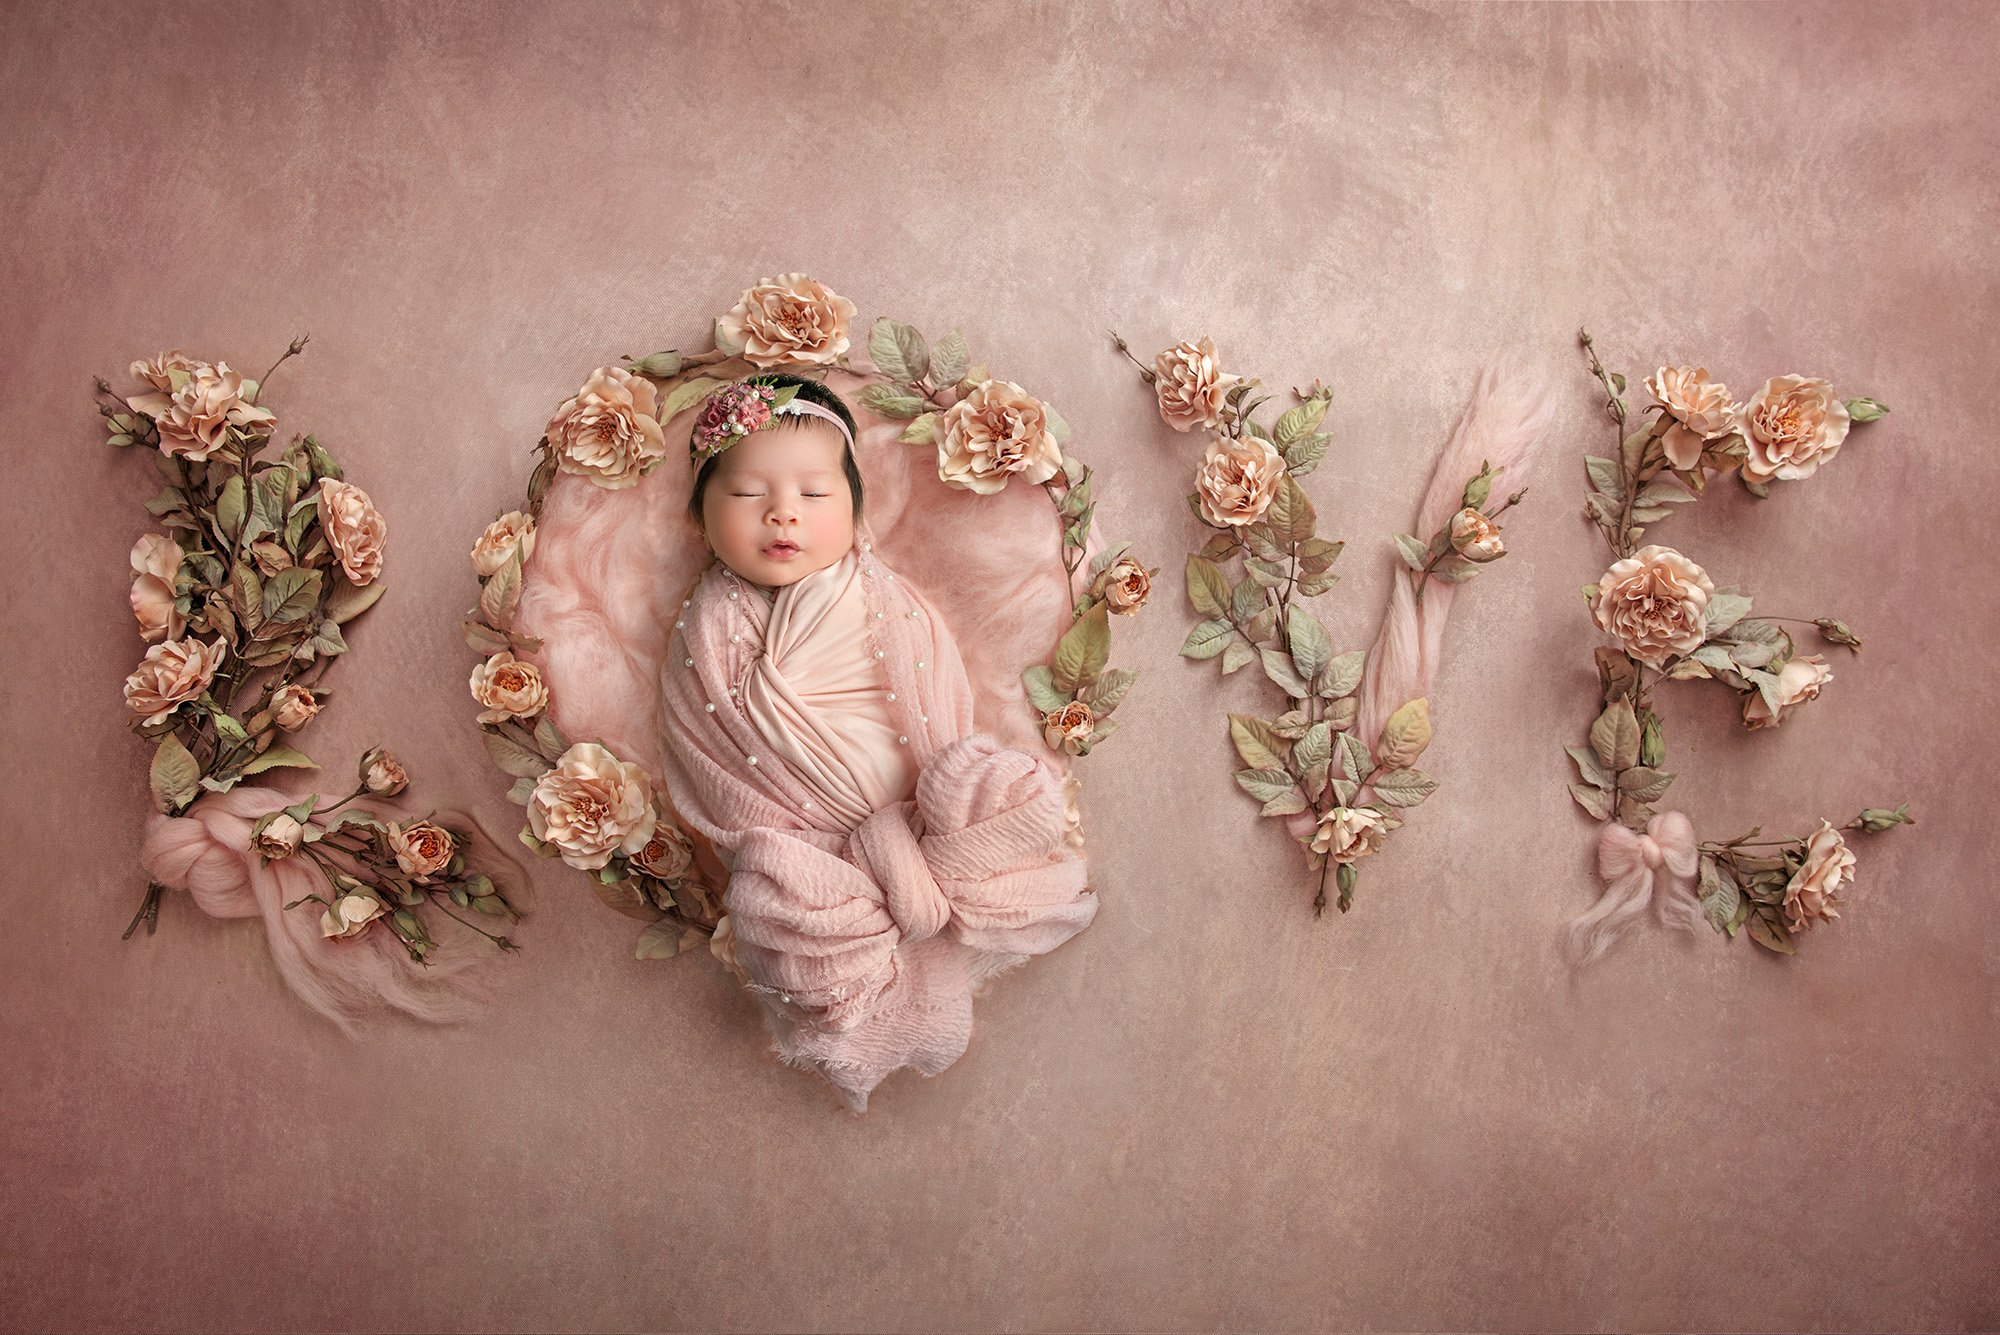 sweet newborn baby girl asleep on a pink background spelling out the word LOVE in flowers and bows